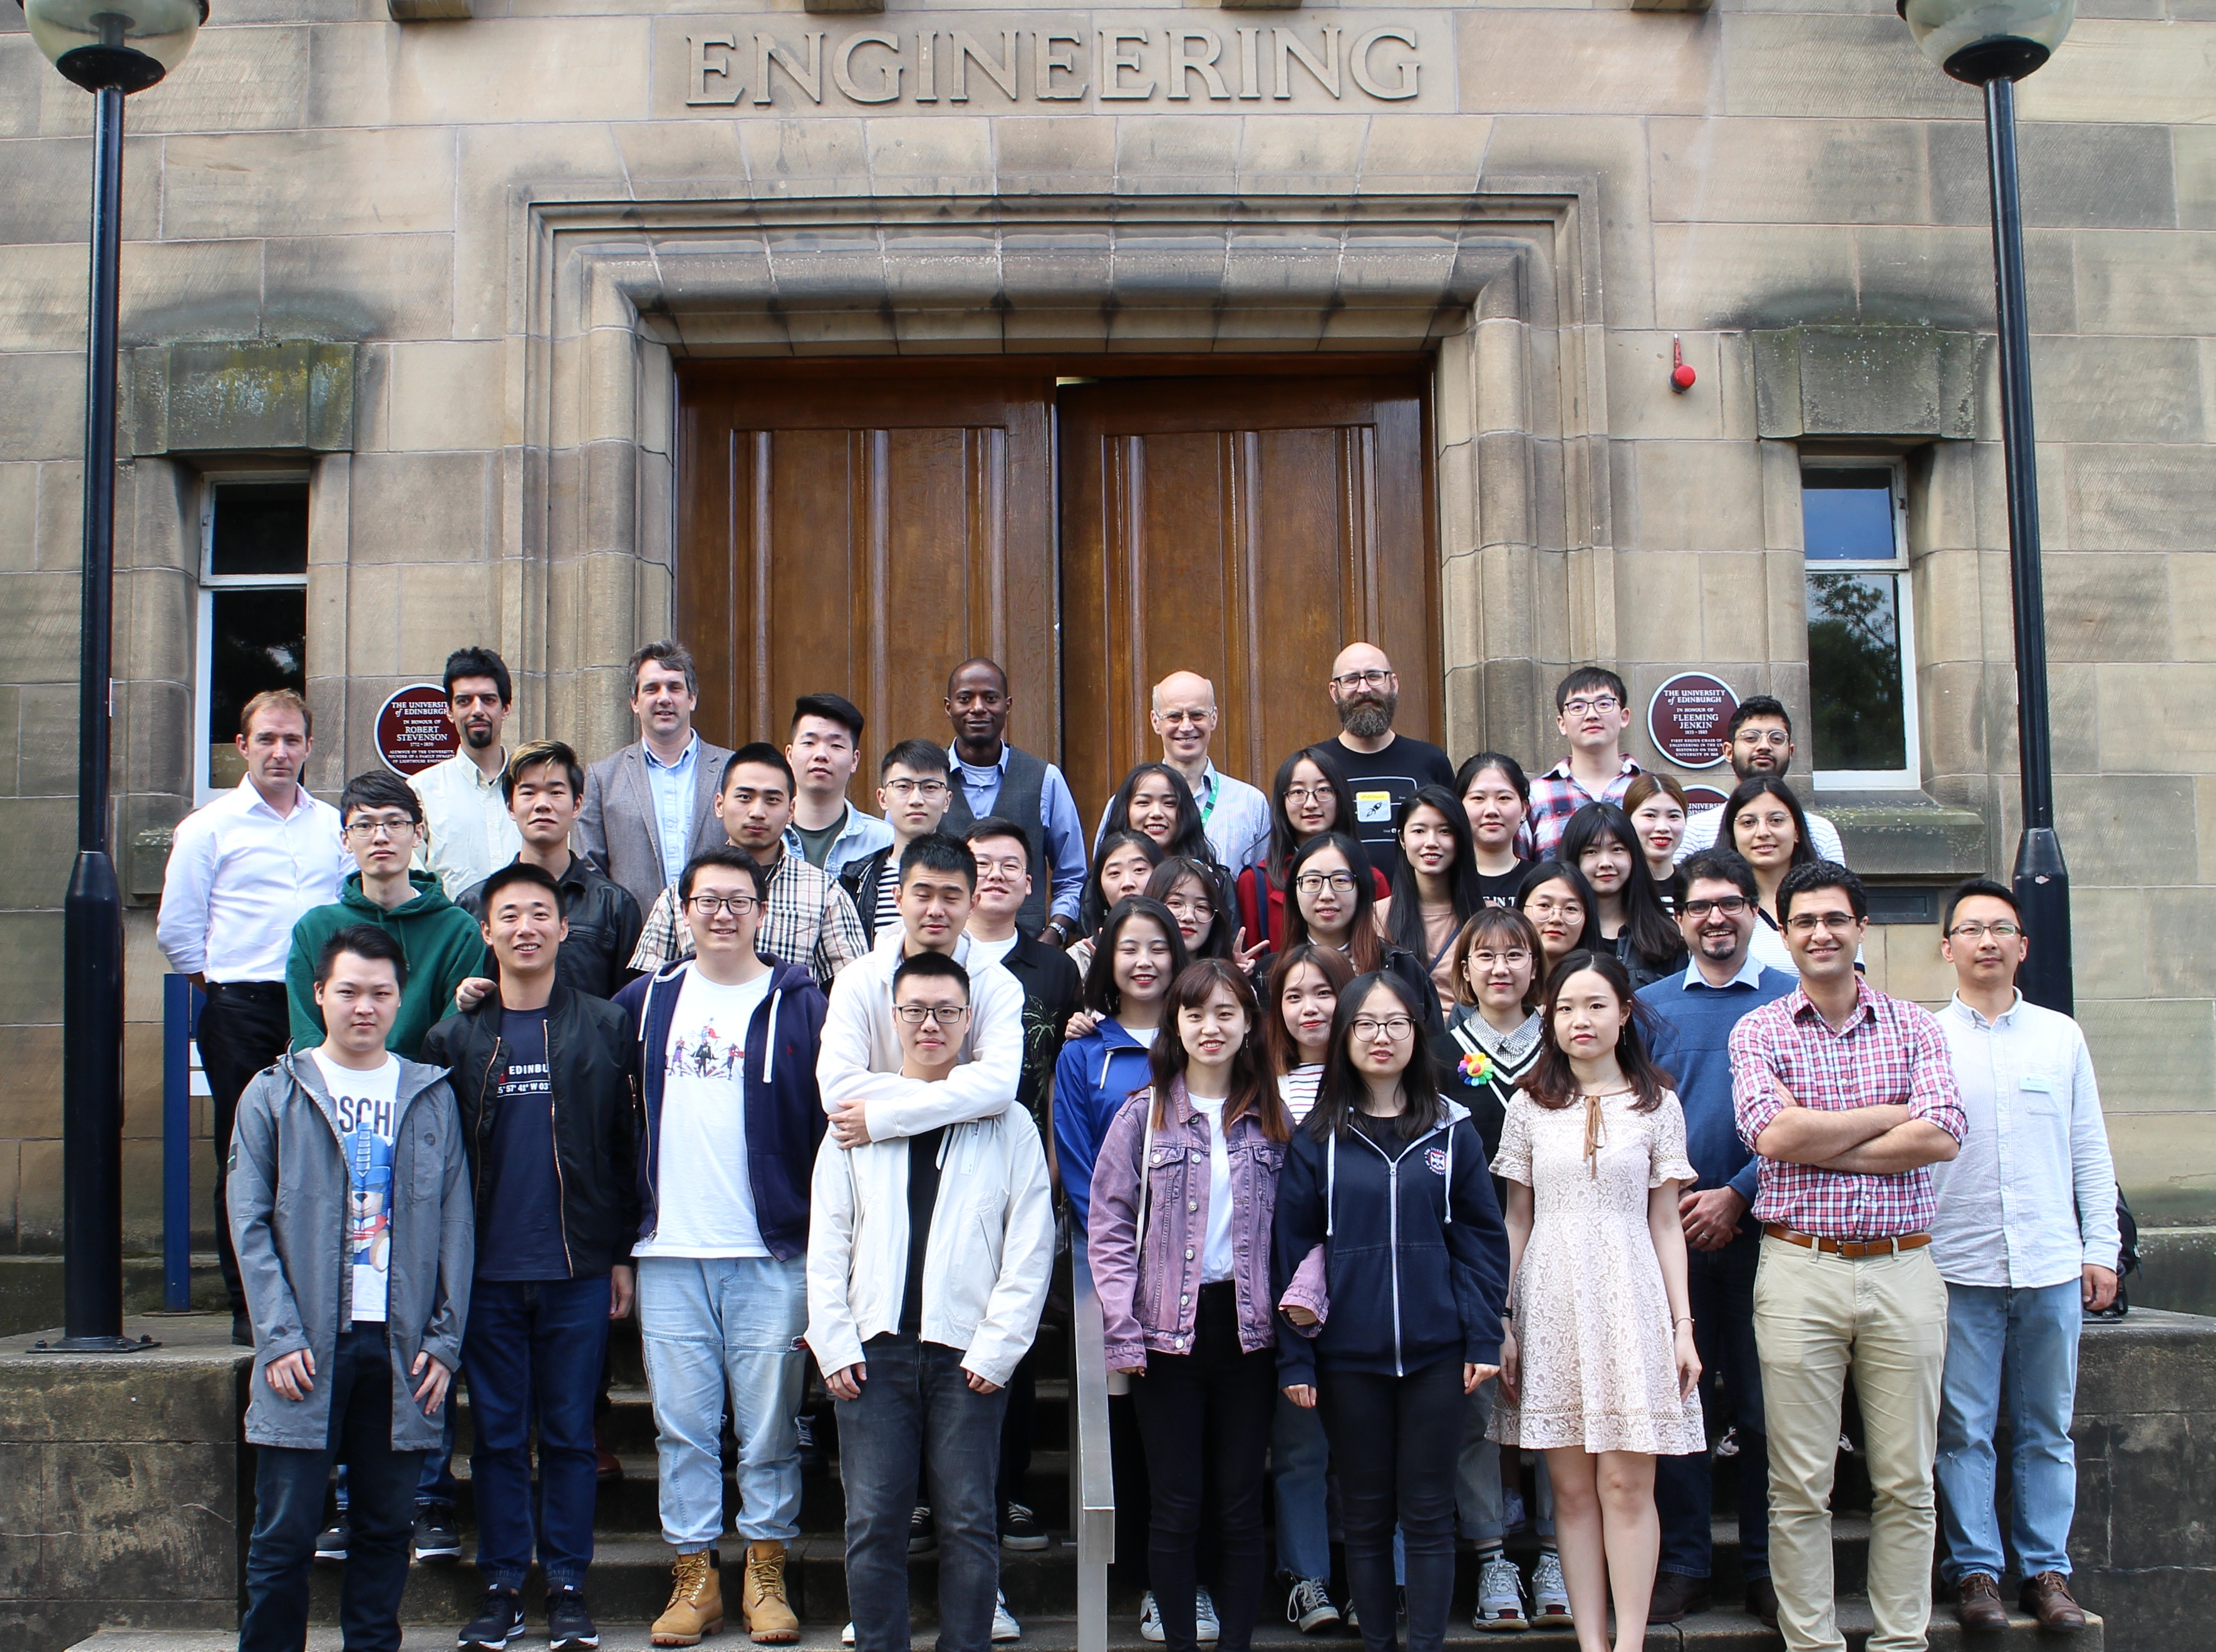 MSc Signal Processing and Communication MSc Students and Lecturers gathered outside the Sanderson Building, University of Edinburgh